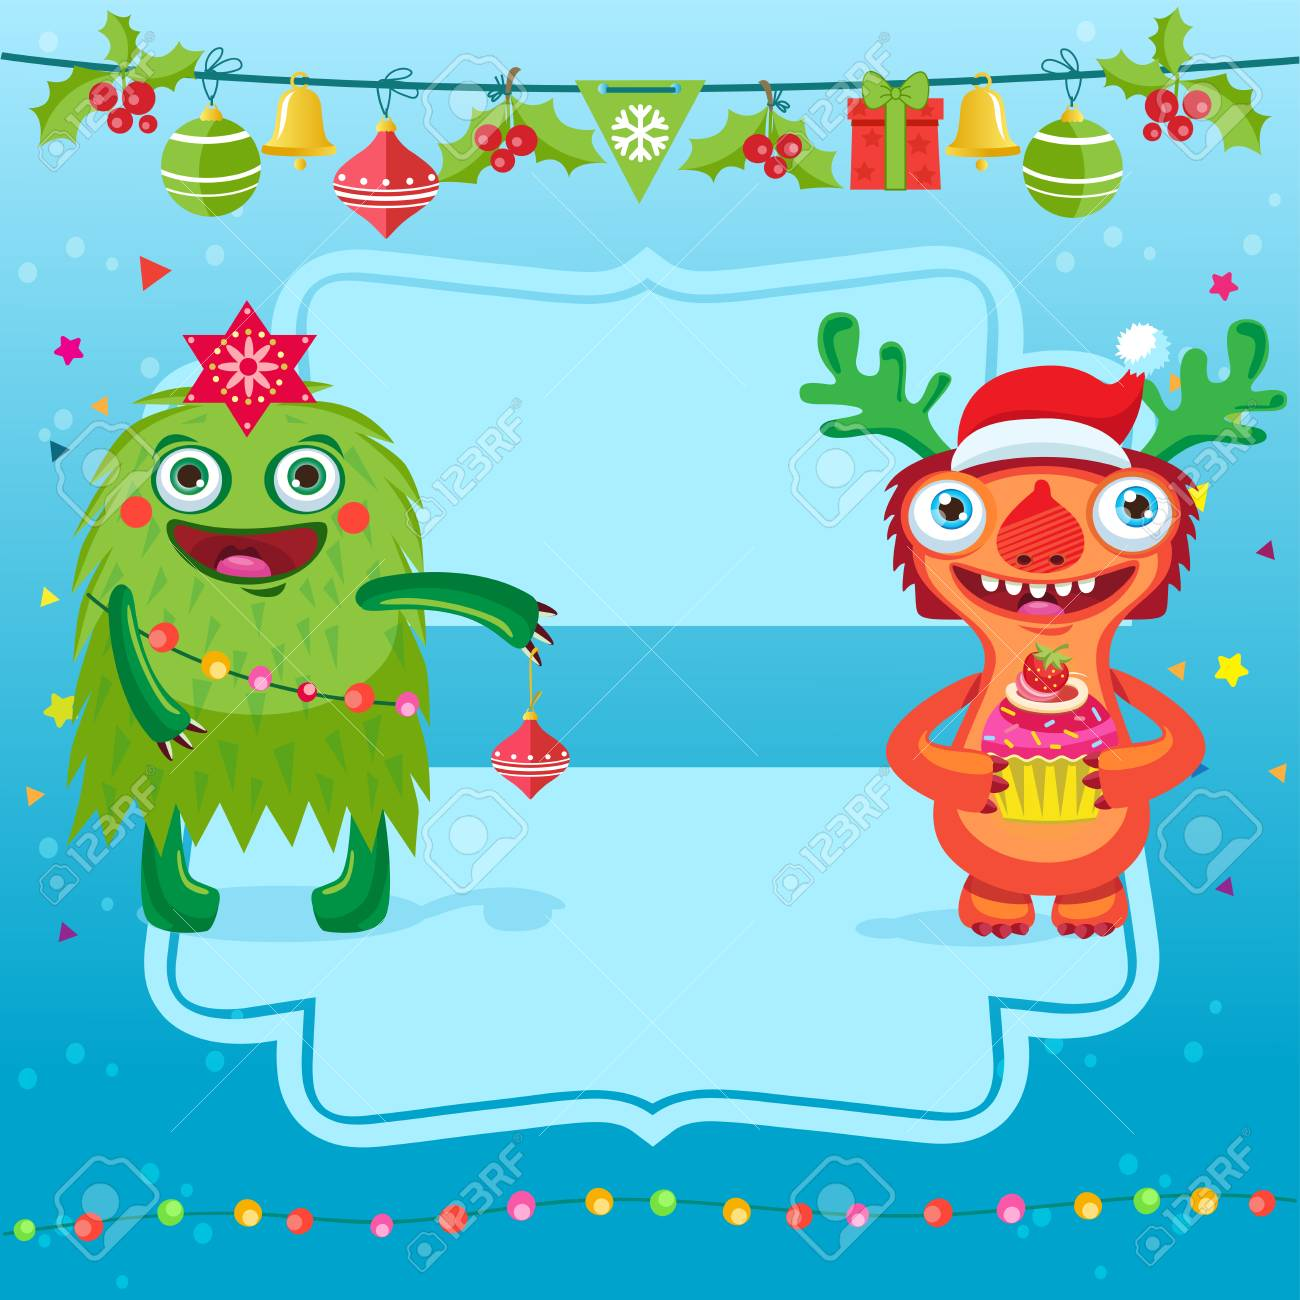 Funny merry christmas vector card greeting card with cartoon funny merry christmas vector card greeting card with cartoon christmas tree and cheerful monster with m4hsunfo